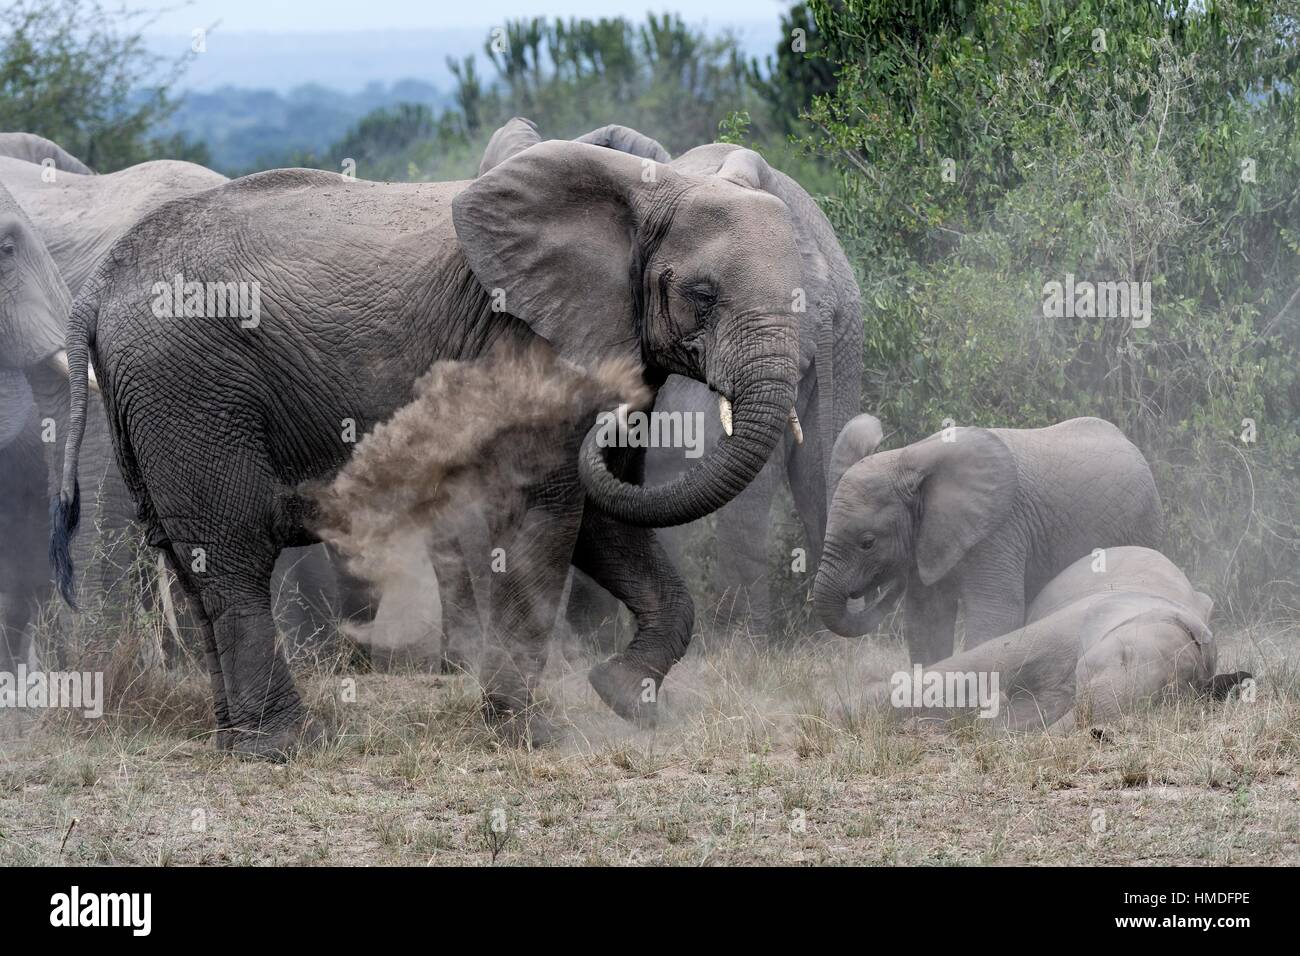 African elephant herd taking a dust bath (Loxodonta africana) Queen Elizabeth National Park, Uganda, Africa. - Stock Image